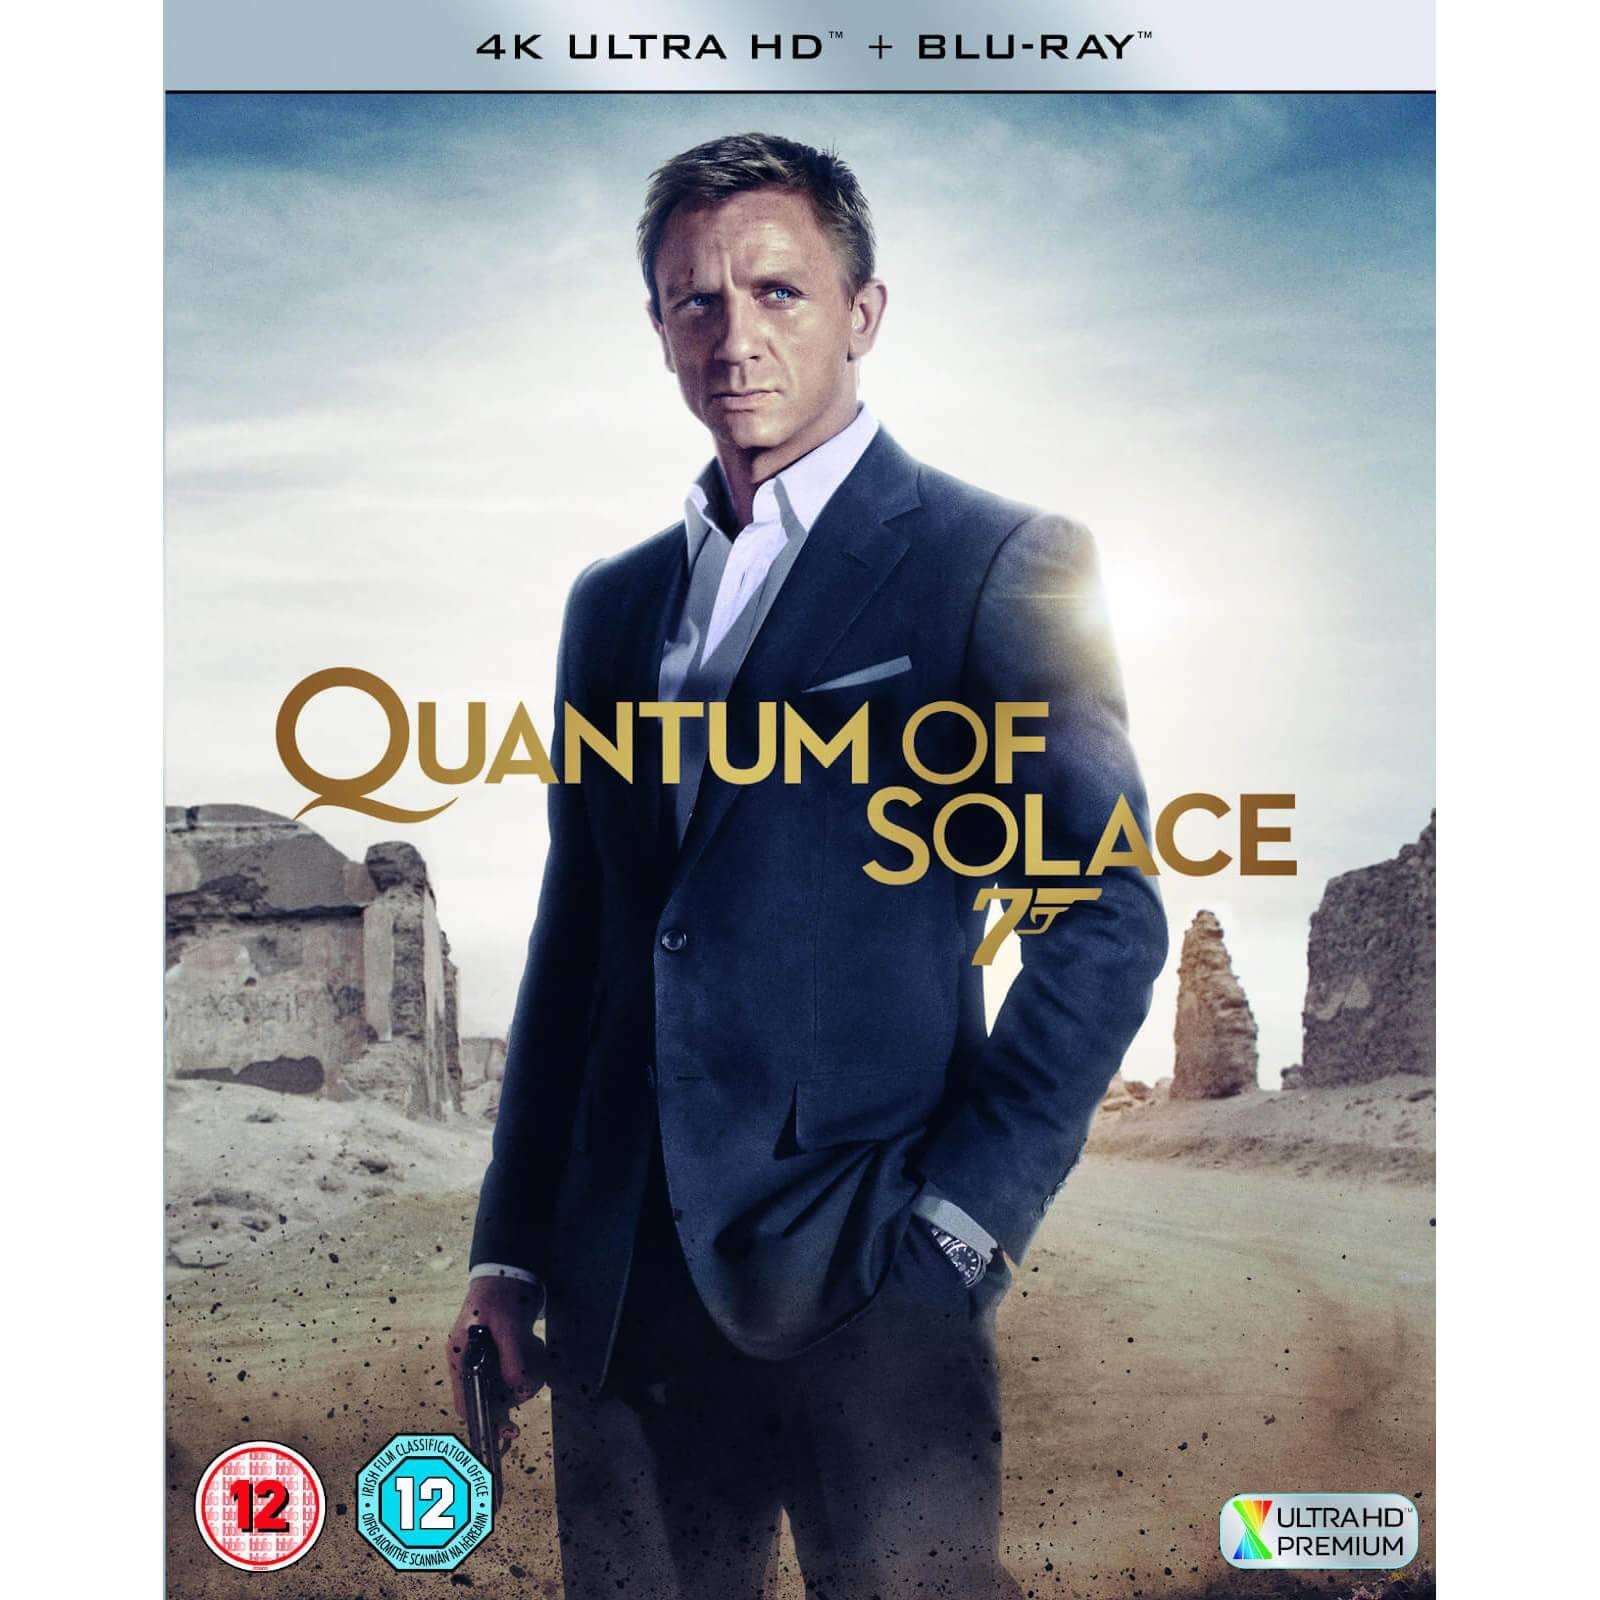 20th Century Fox Quantum of Solace - 4K Ultra HD (Includes 2D Blu-ray)